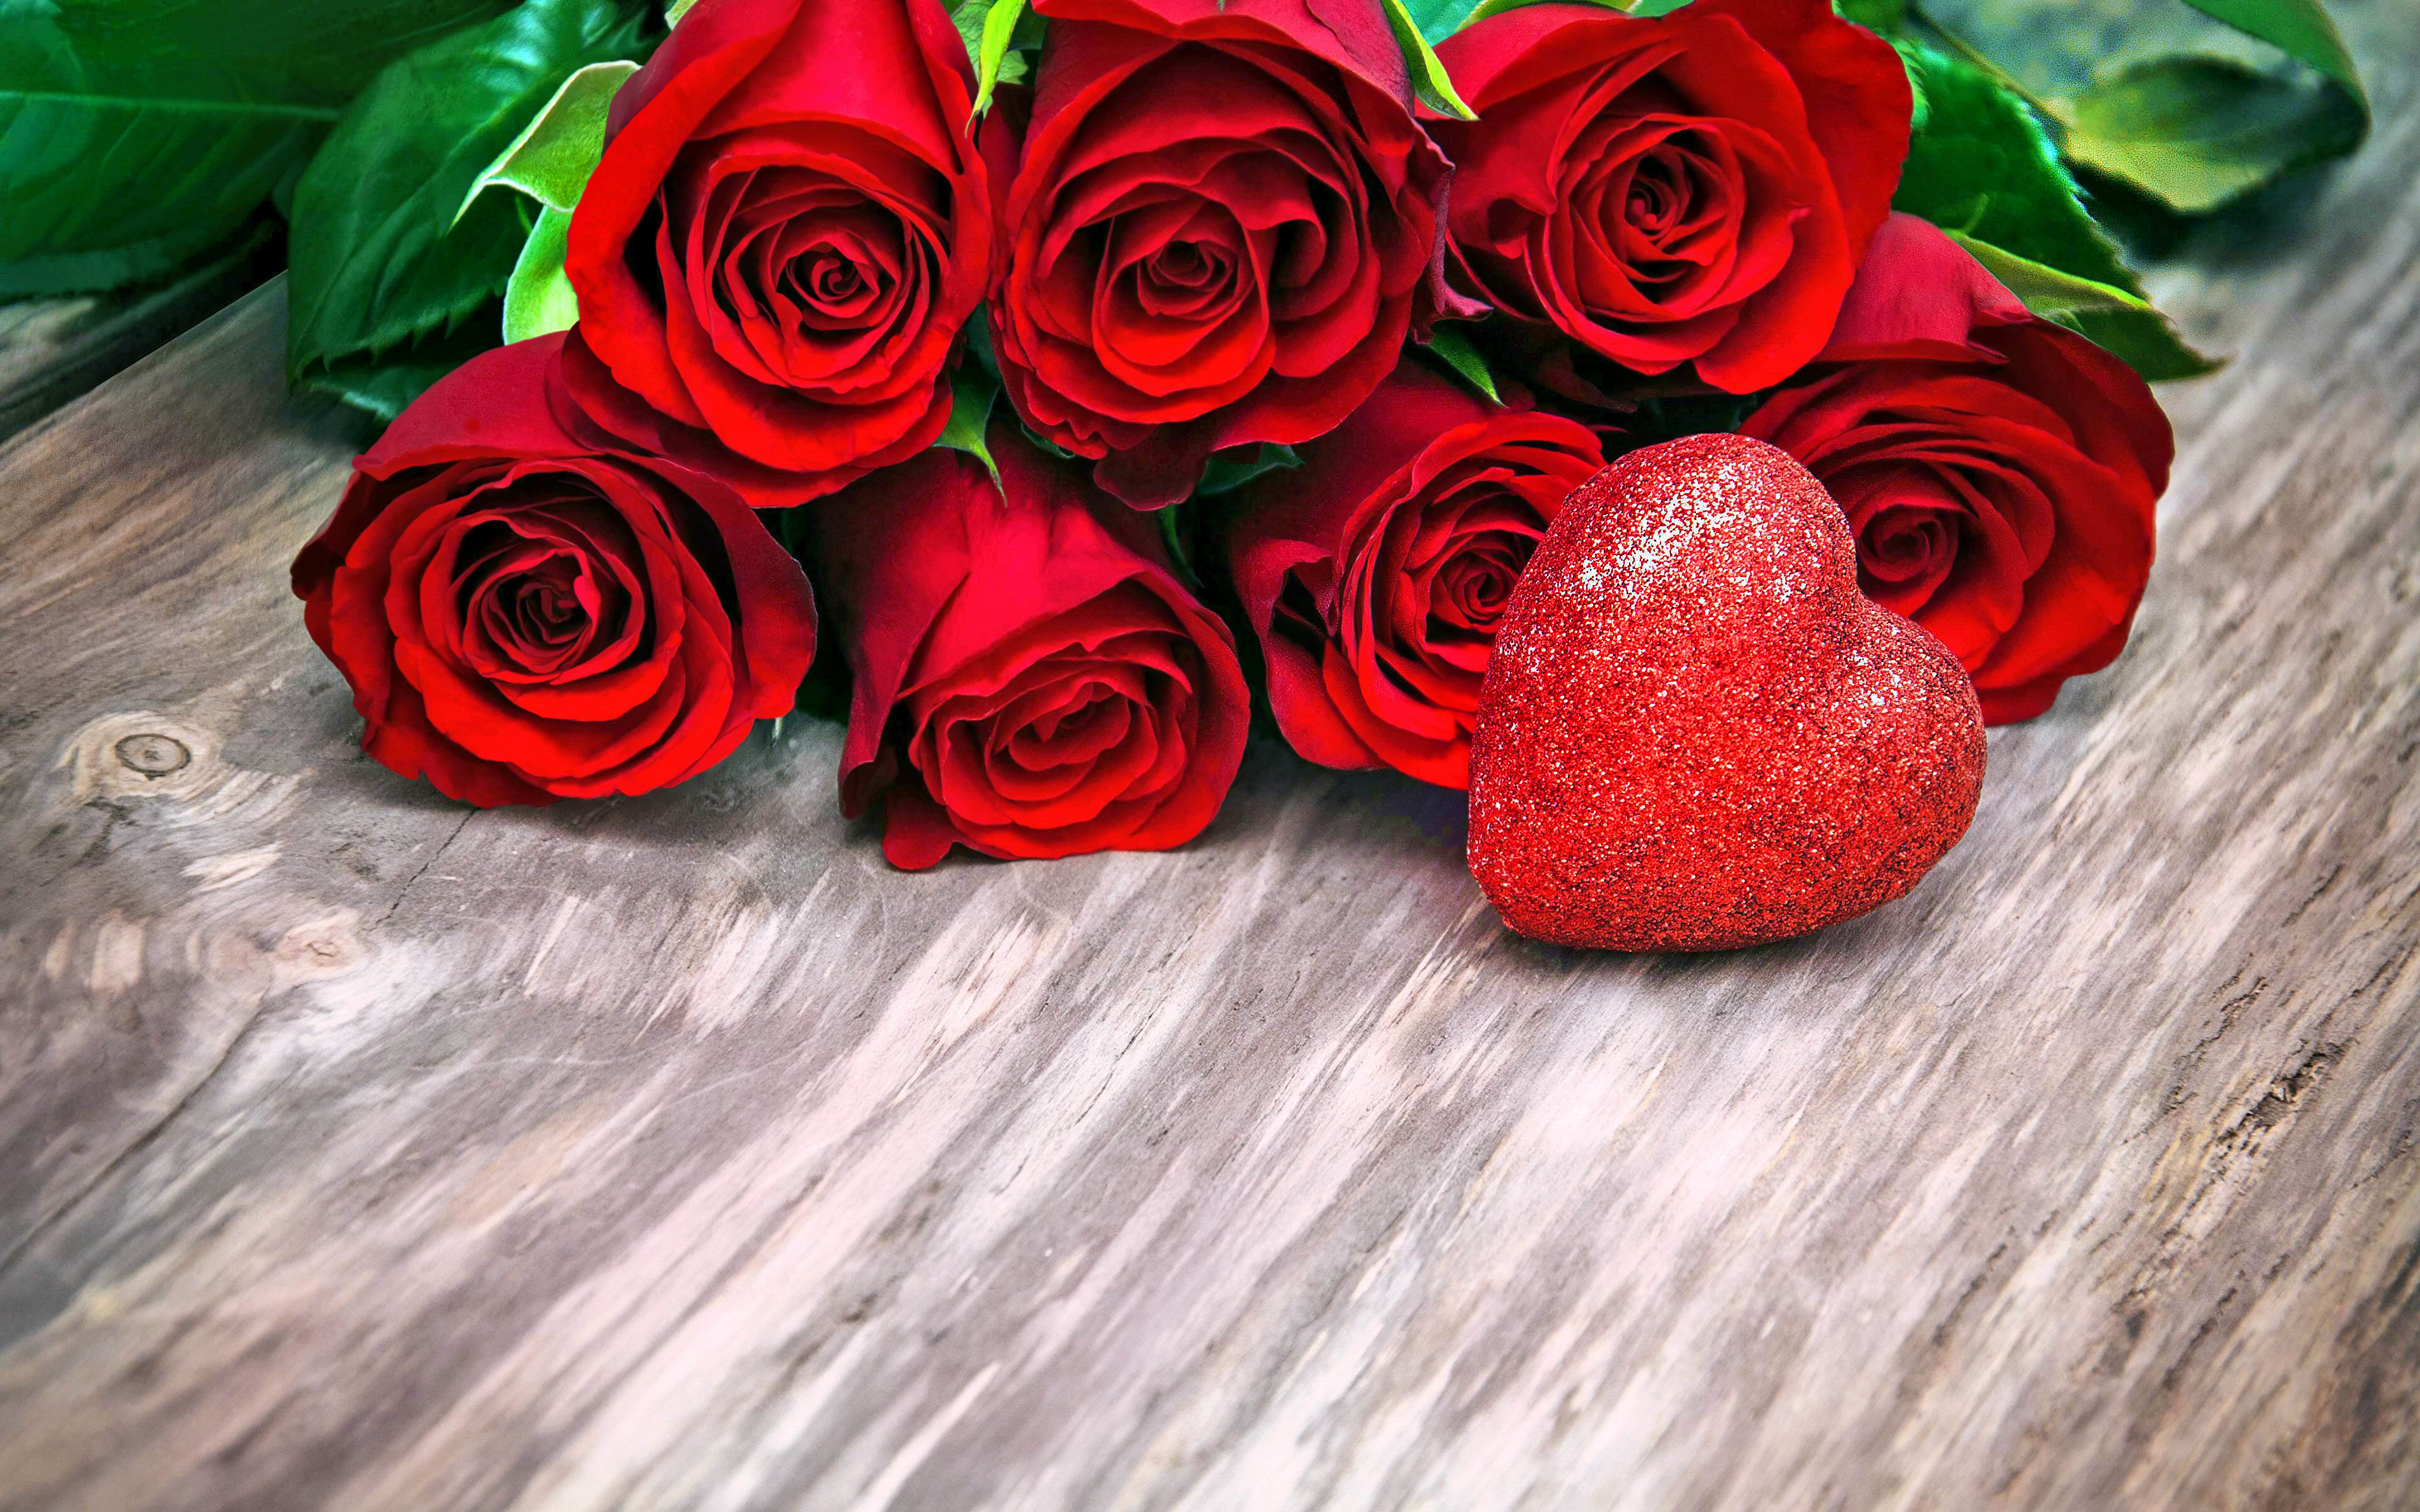 Valentine's Day 26 rose bouquet 24march2017friday 225947 3840x2400 HIGHRES 4k Ultra Fond ...